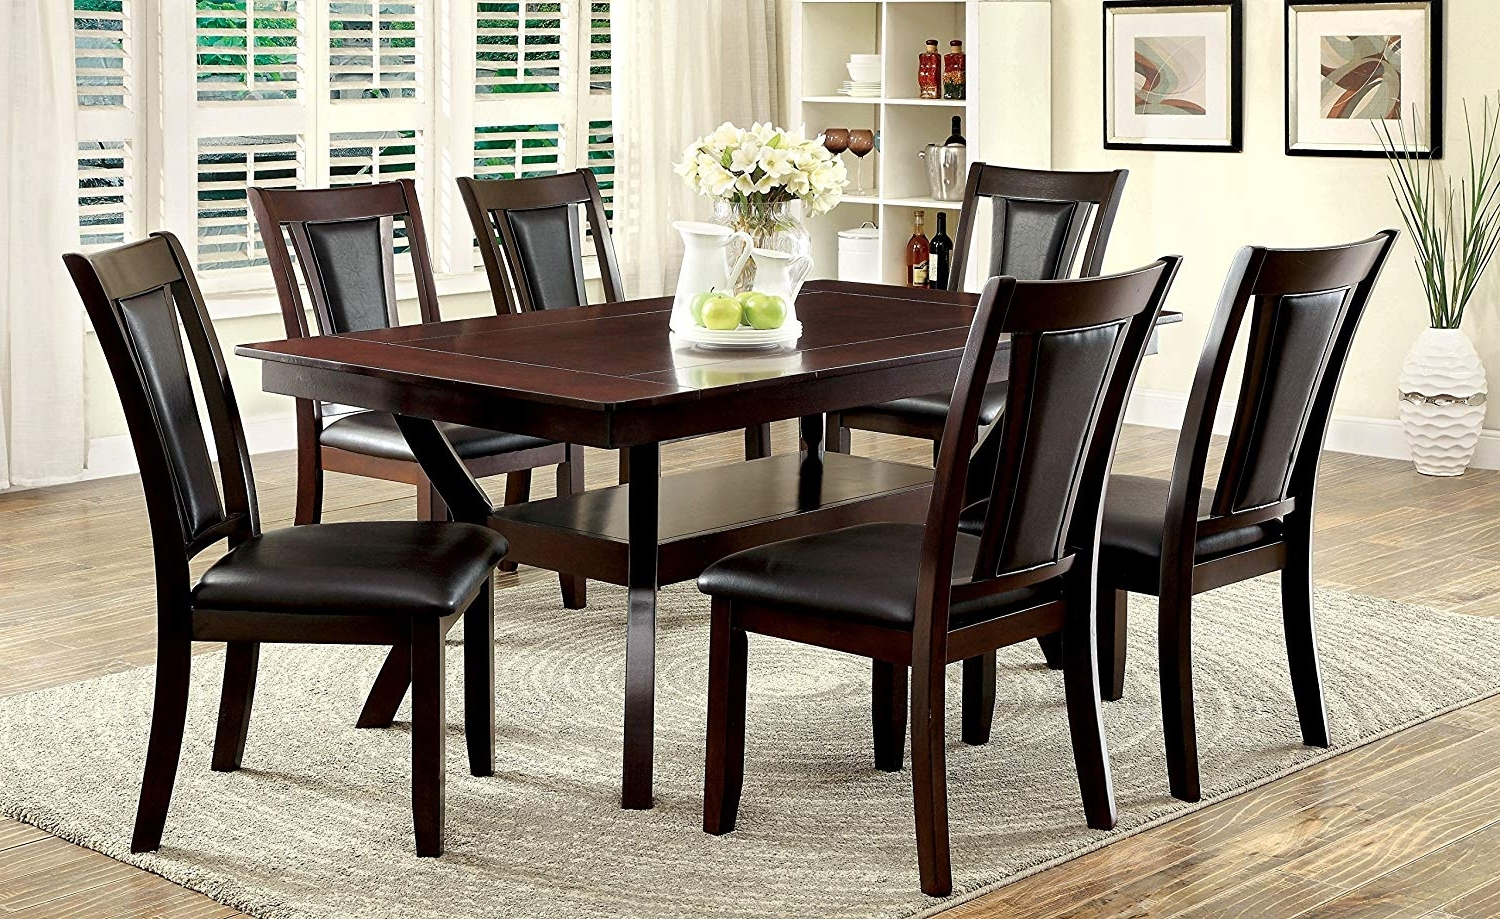 Amazon – Furniture Of America Dalcroze 7 Piece Modern Dining Set In Most Recent Amos 6 Piece Extension Dining Sets (View 18 of 25)